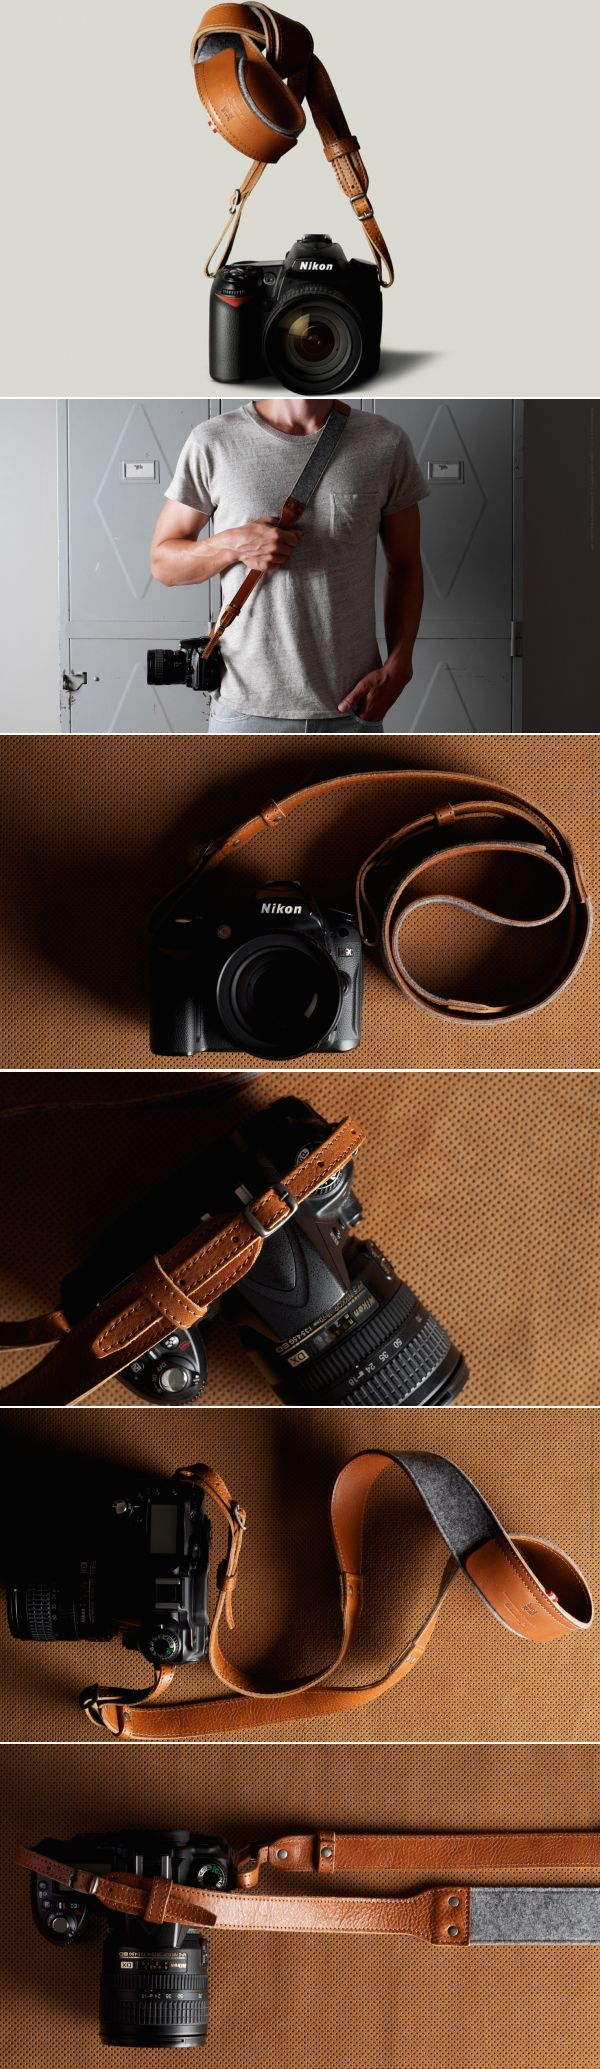 #hardgraft Hang Camera Strap                                                                                                                                                                                 More